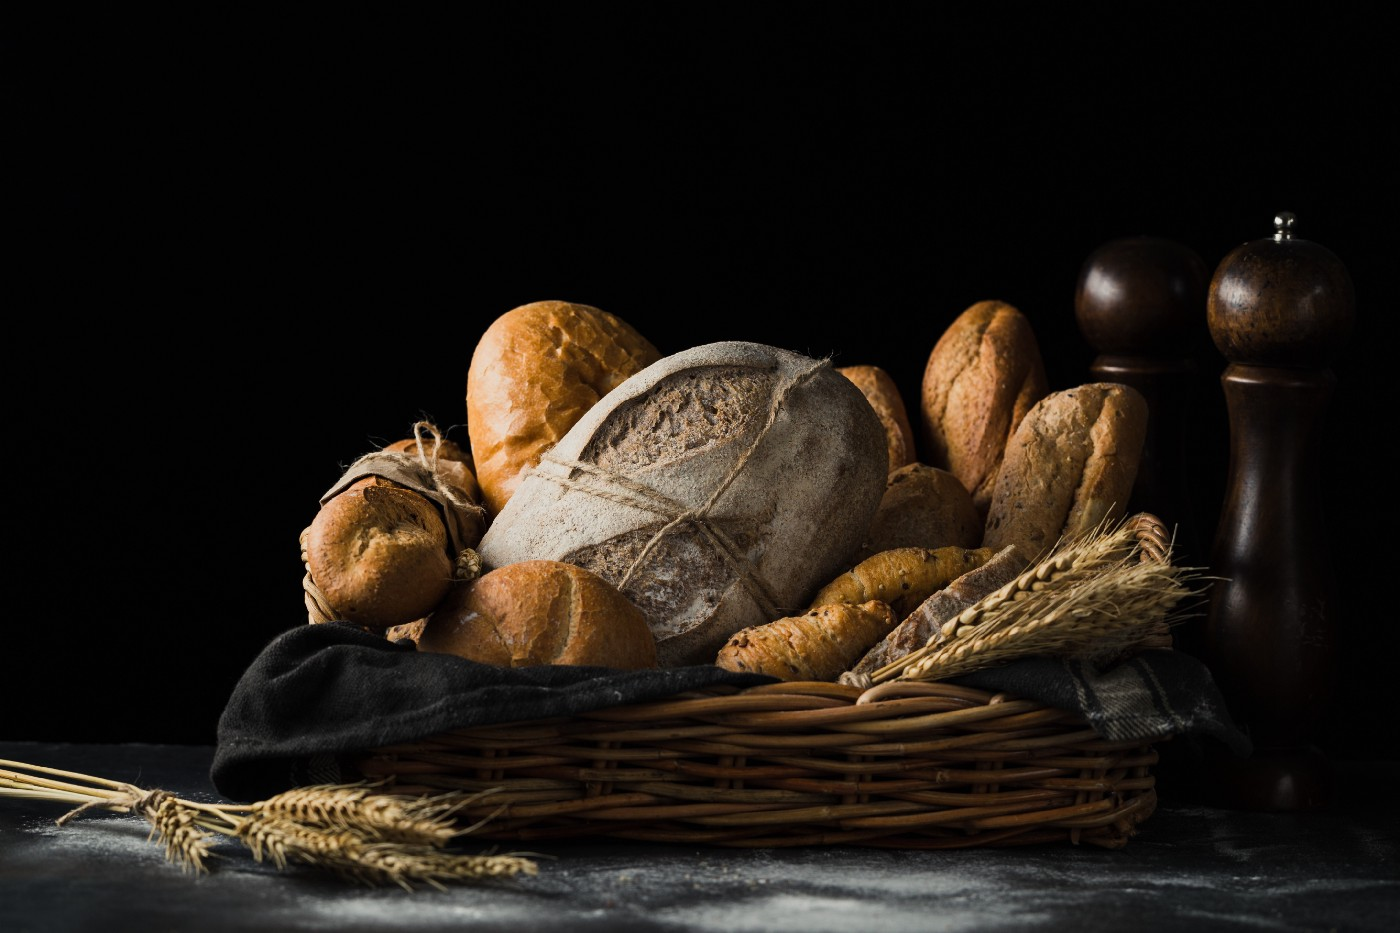 A basket of bread, stalks of wheat, and salt and pepper shakers against a black background